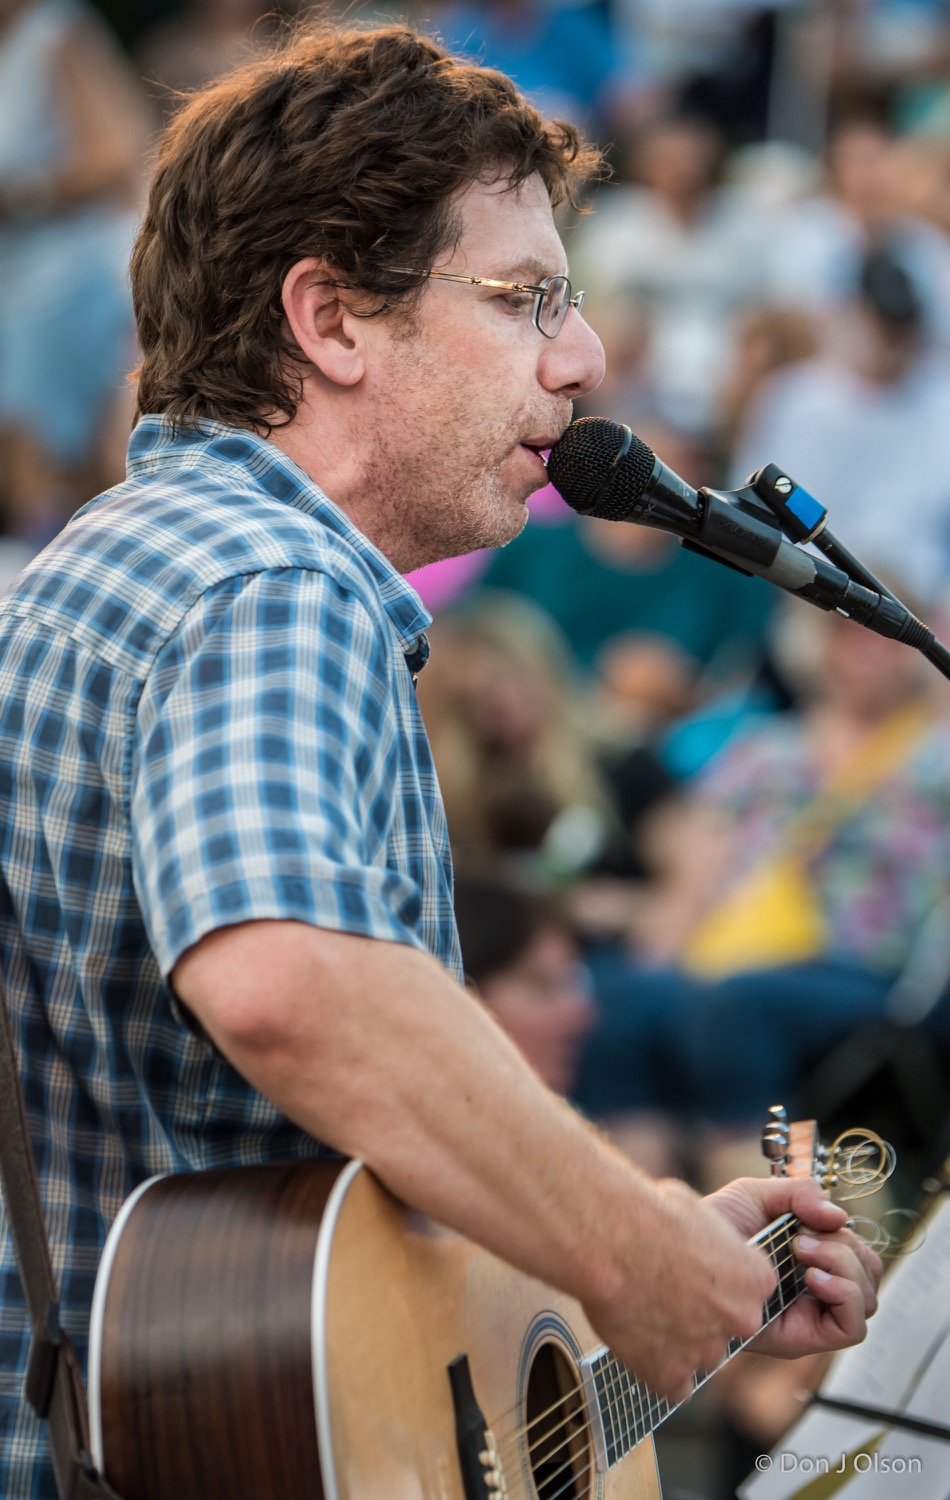 Dan Israel / The Veterans' Memorial Wolfe Park Amphitheater / St. Louis Park, Minnesota / August 1st, 2015